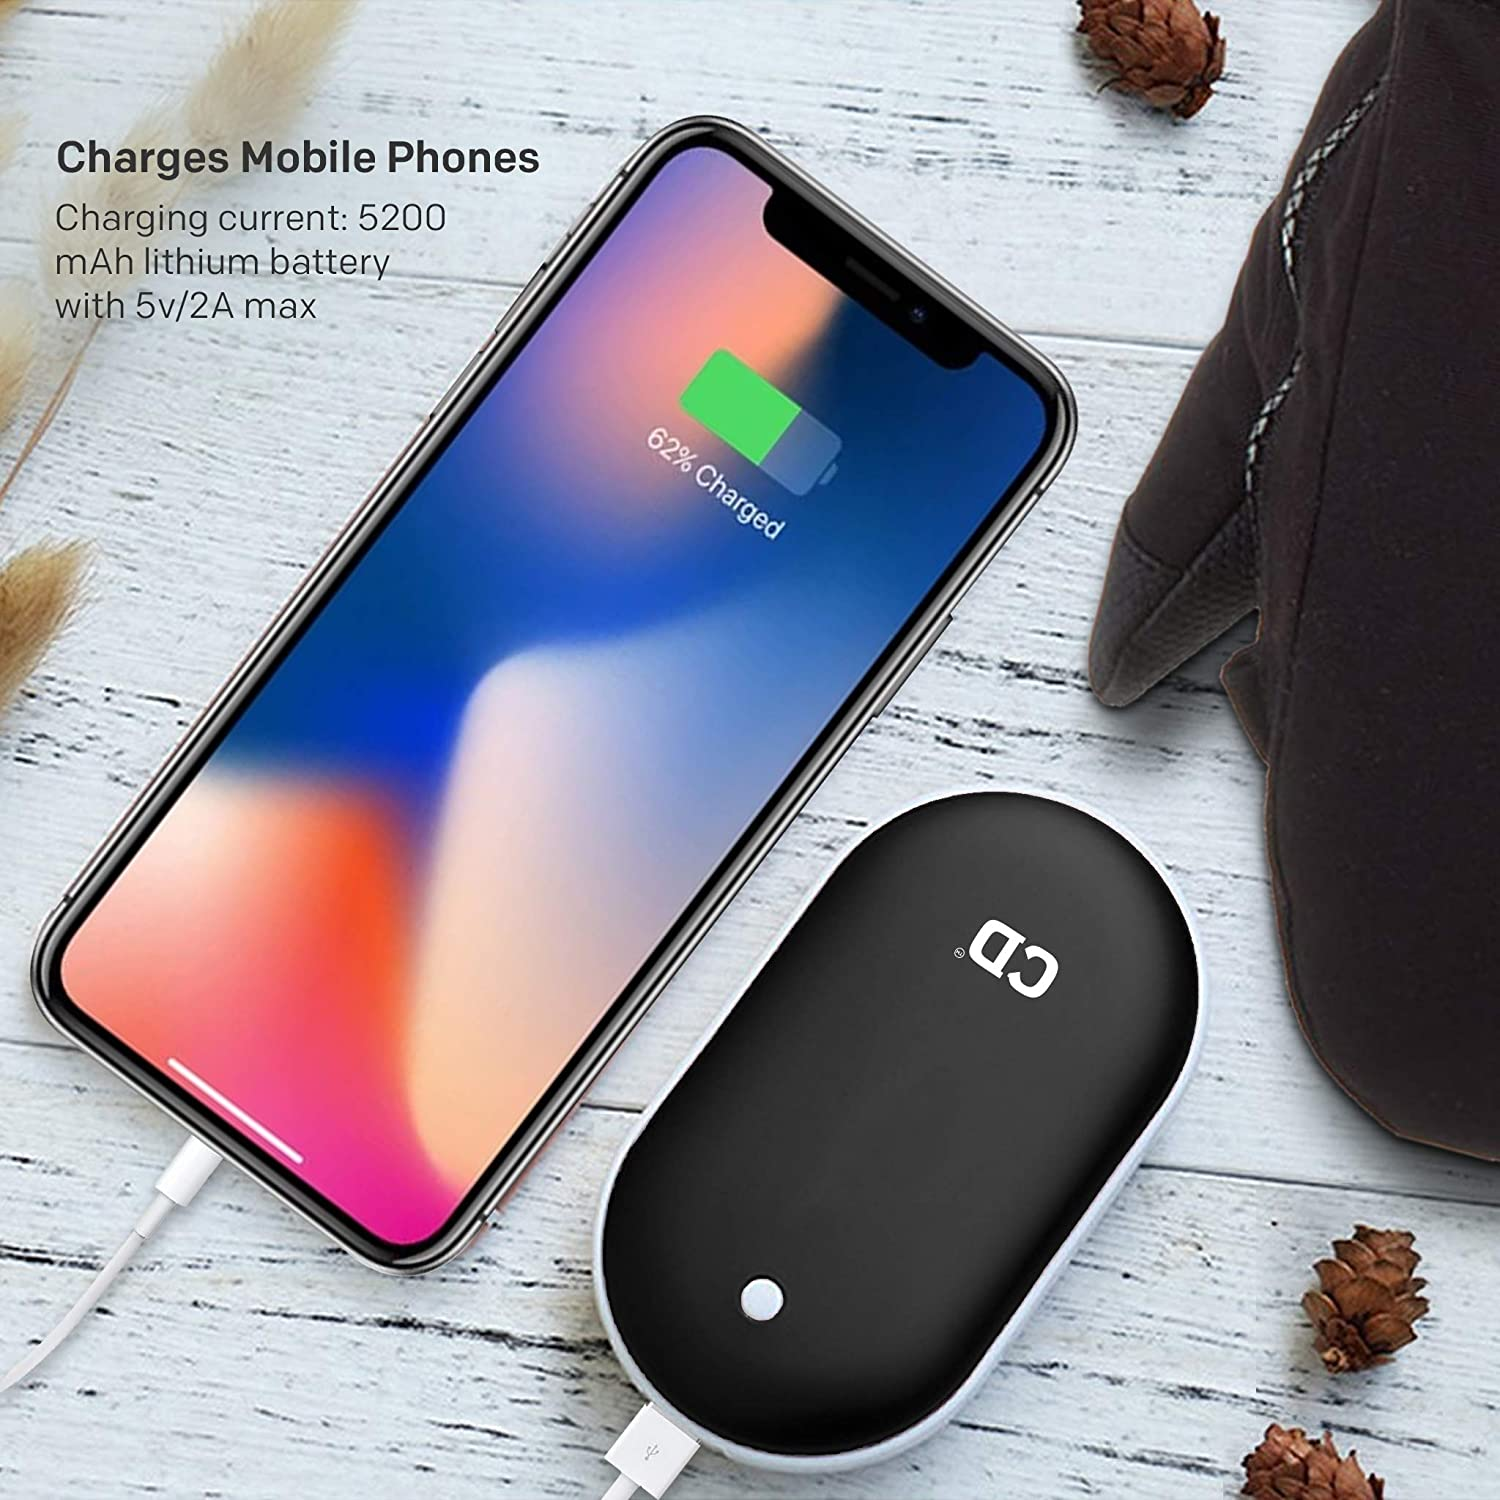 Black Electric Hand Warmer Double-sided Heating Portable USB Mobile External Battery Charger Best Gift in Winter for Women Comfy Degree Rechargeable Hand Warmers 5200mAh Power Bank Man